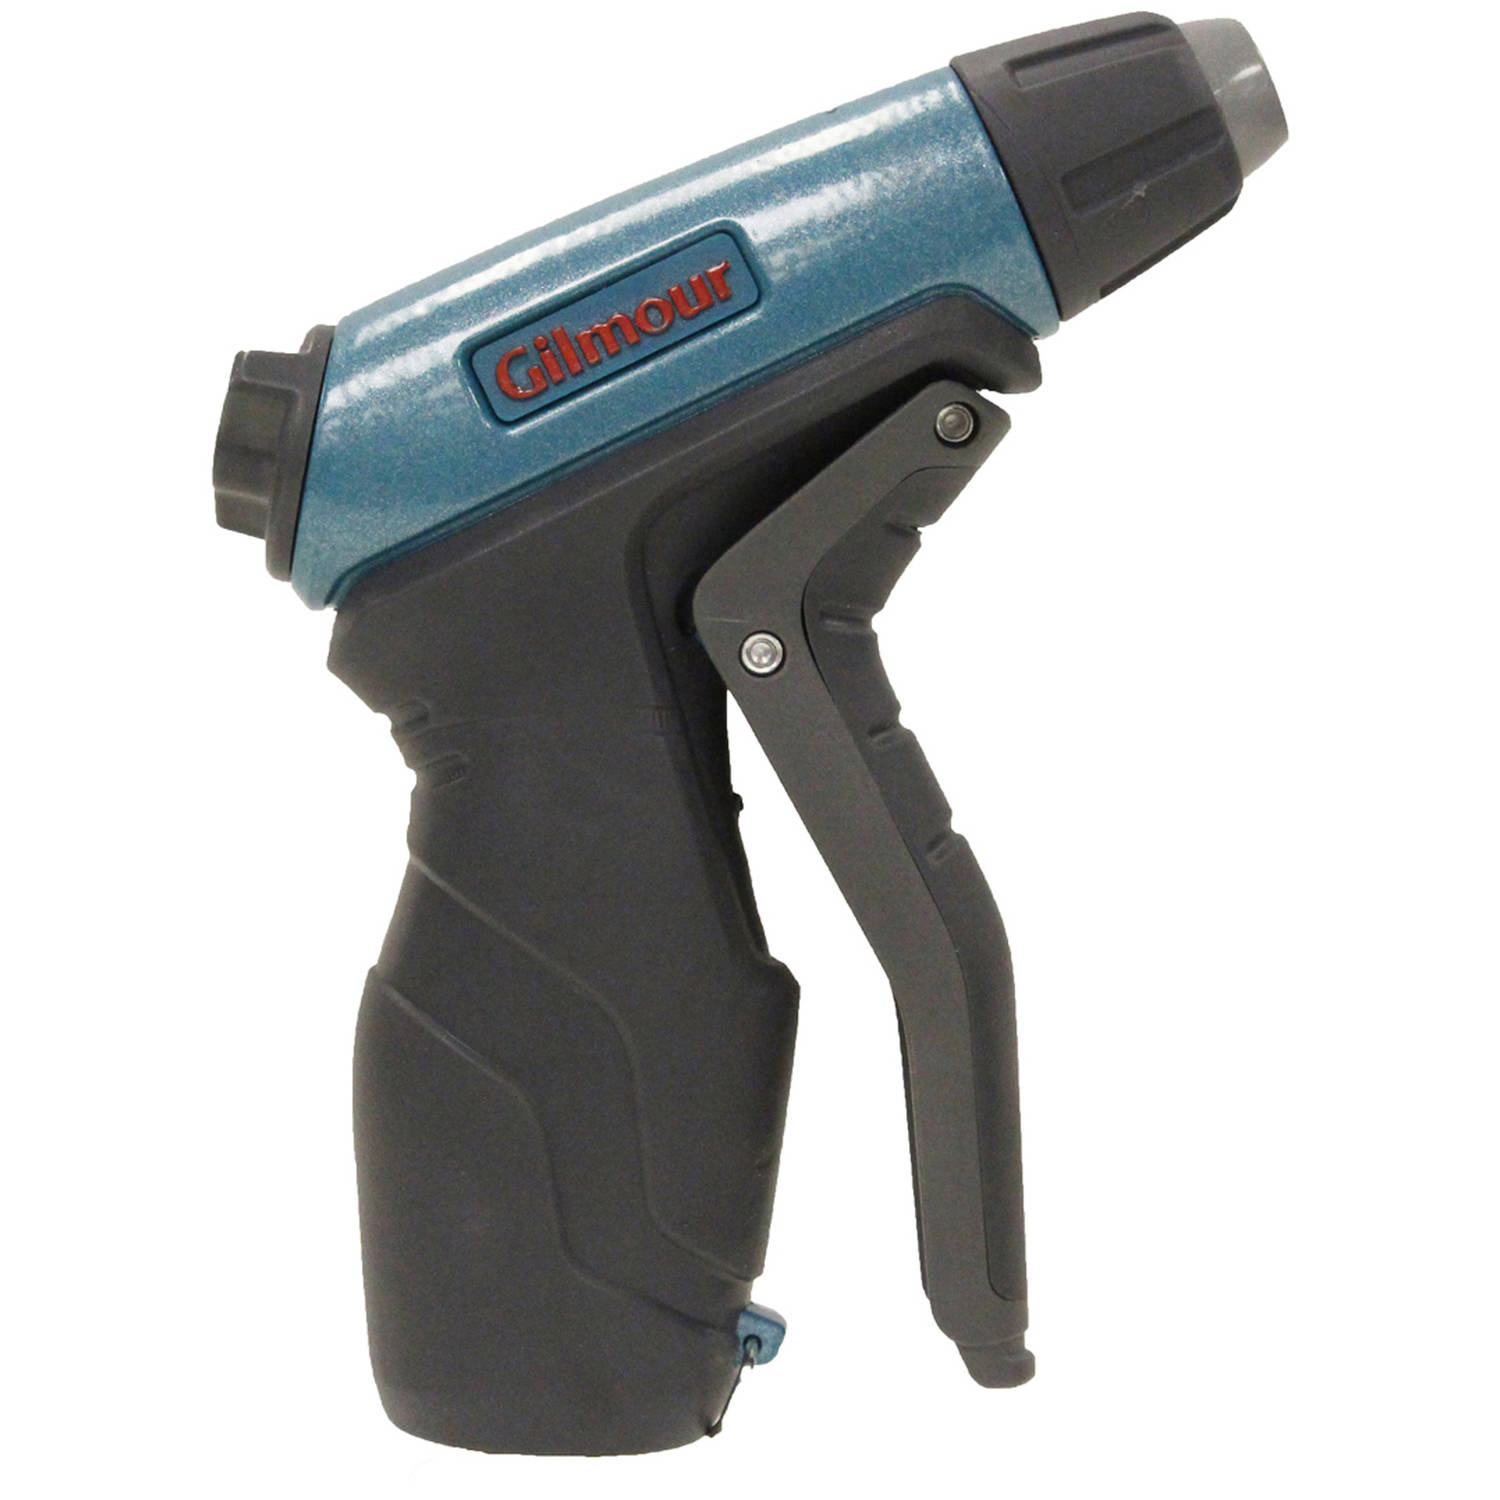 Gilmour 310GCF Adjustable Nozzle with Pistol Trigger